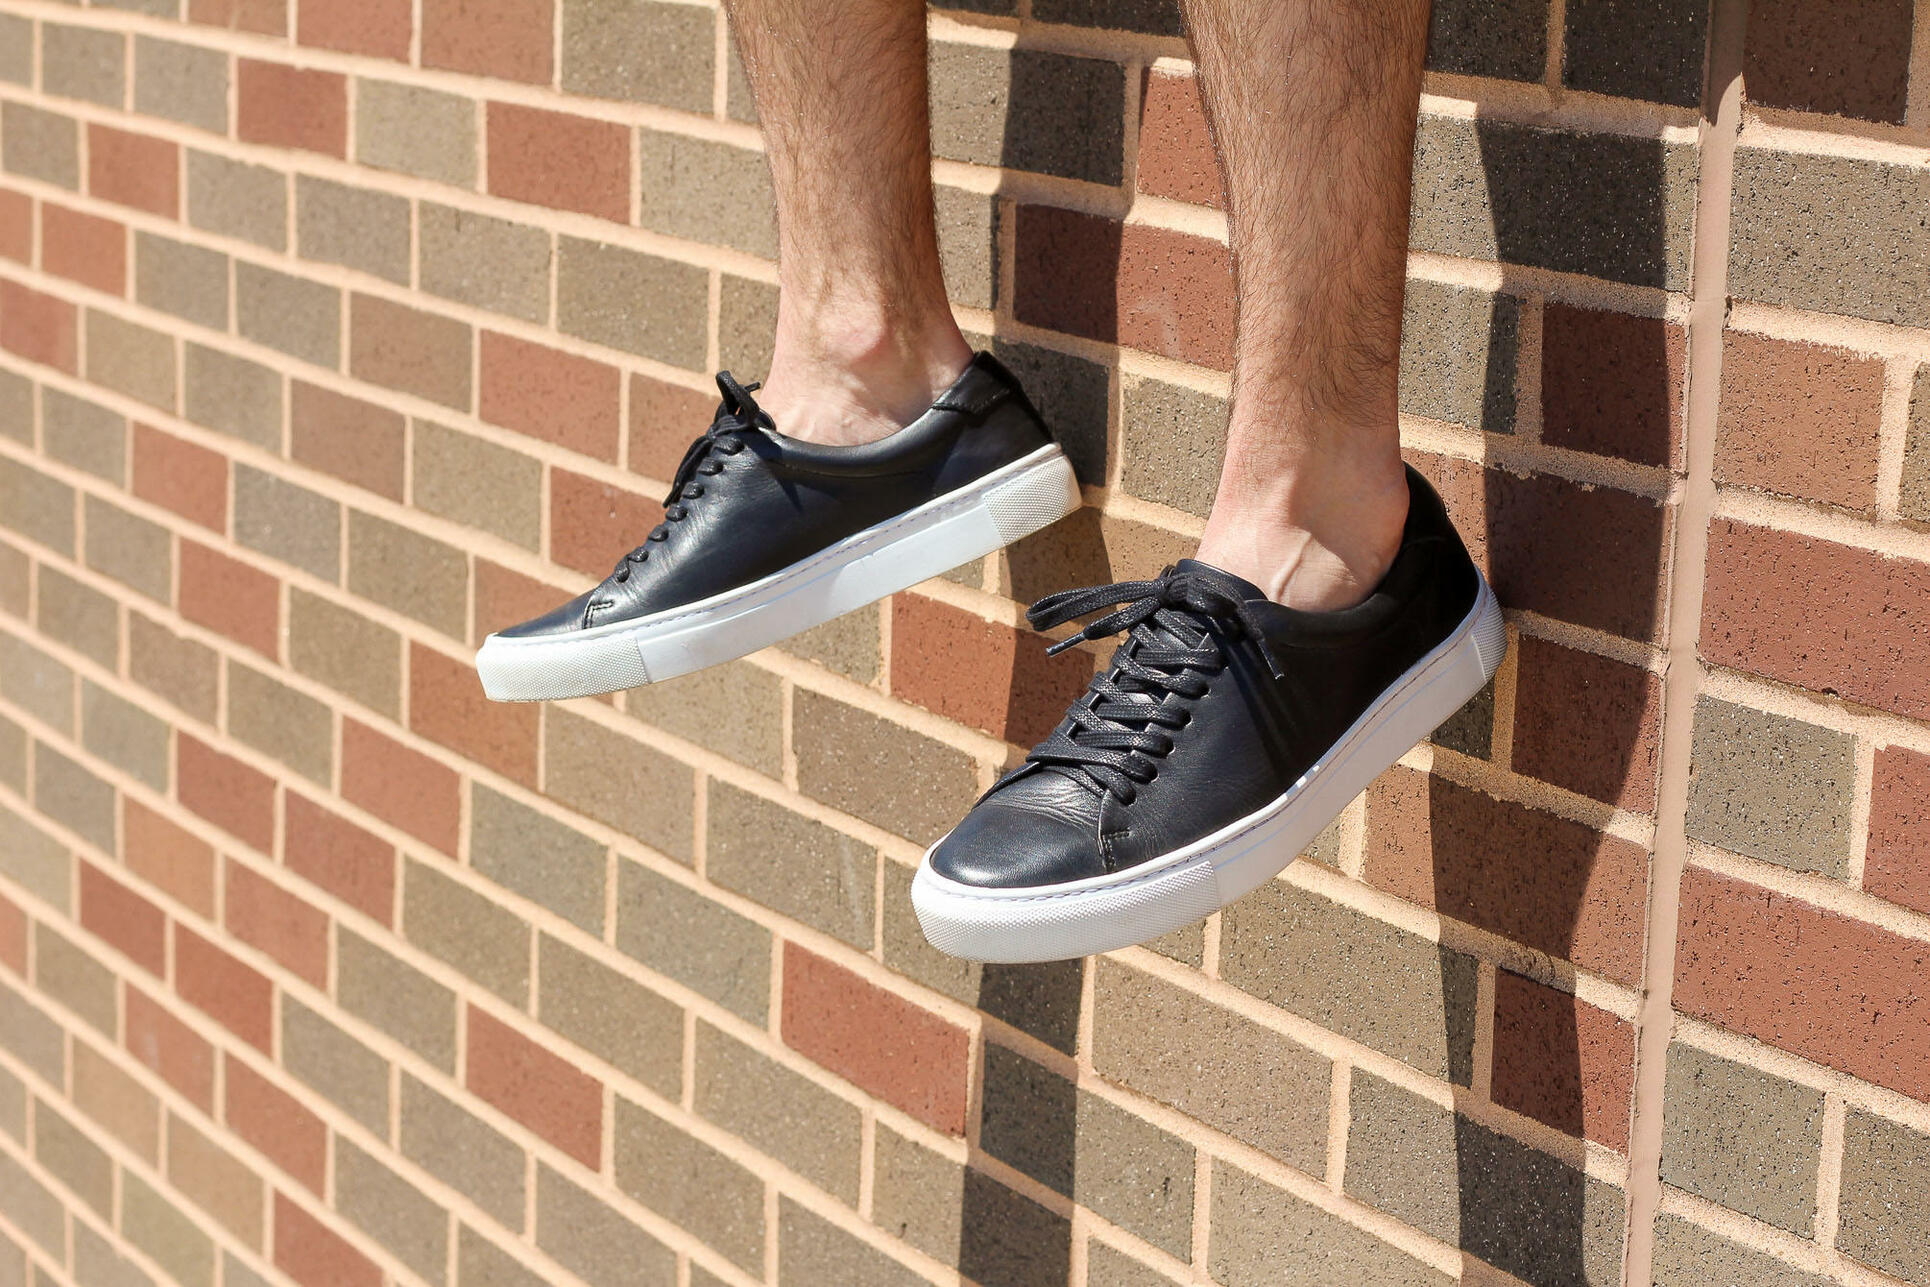 Going sockless with leather sneakers